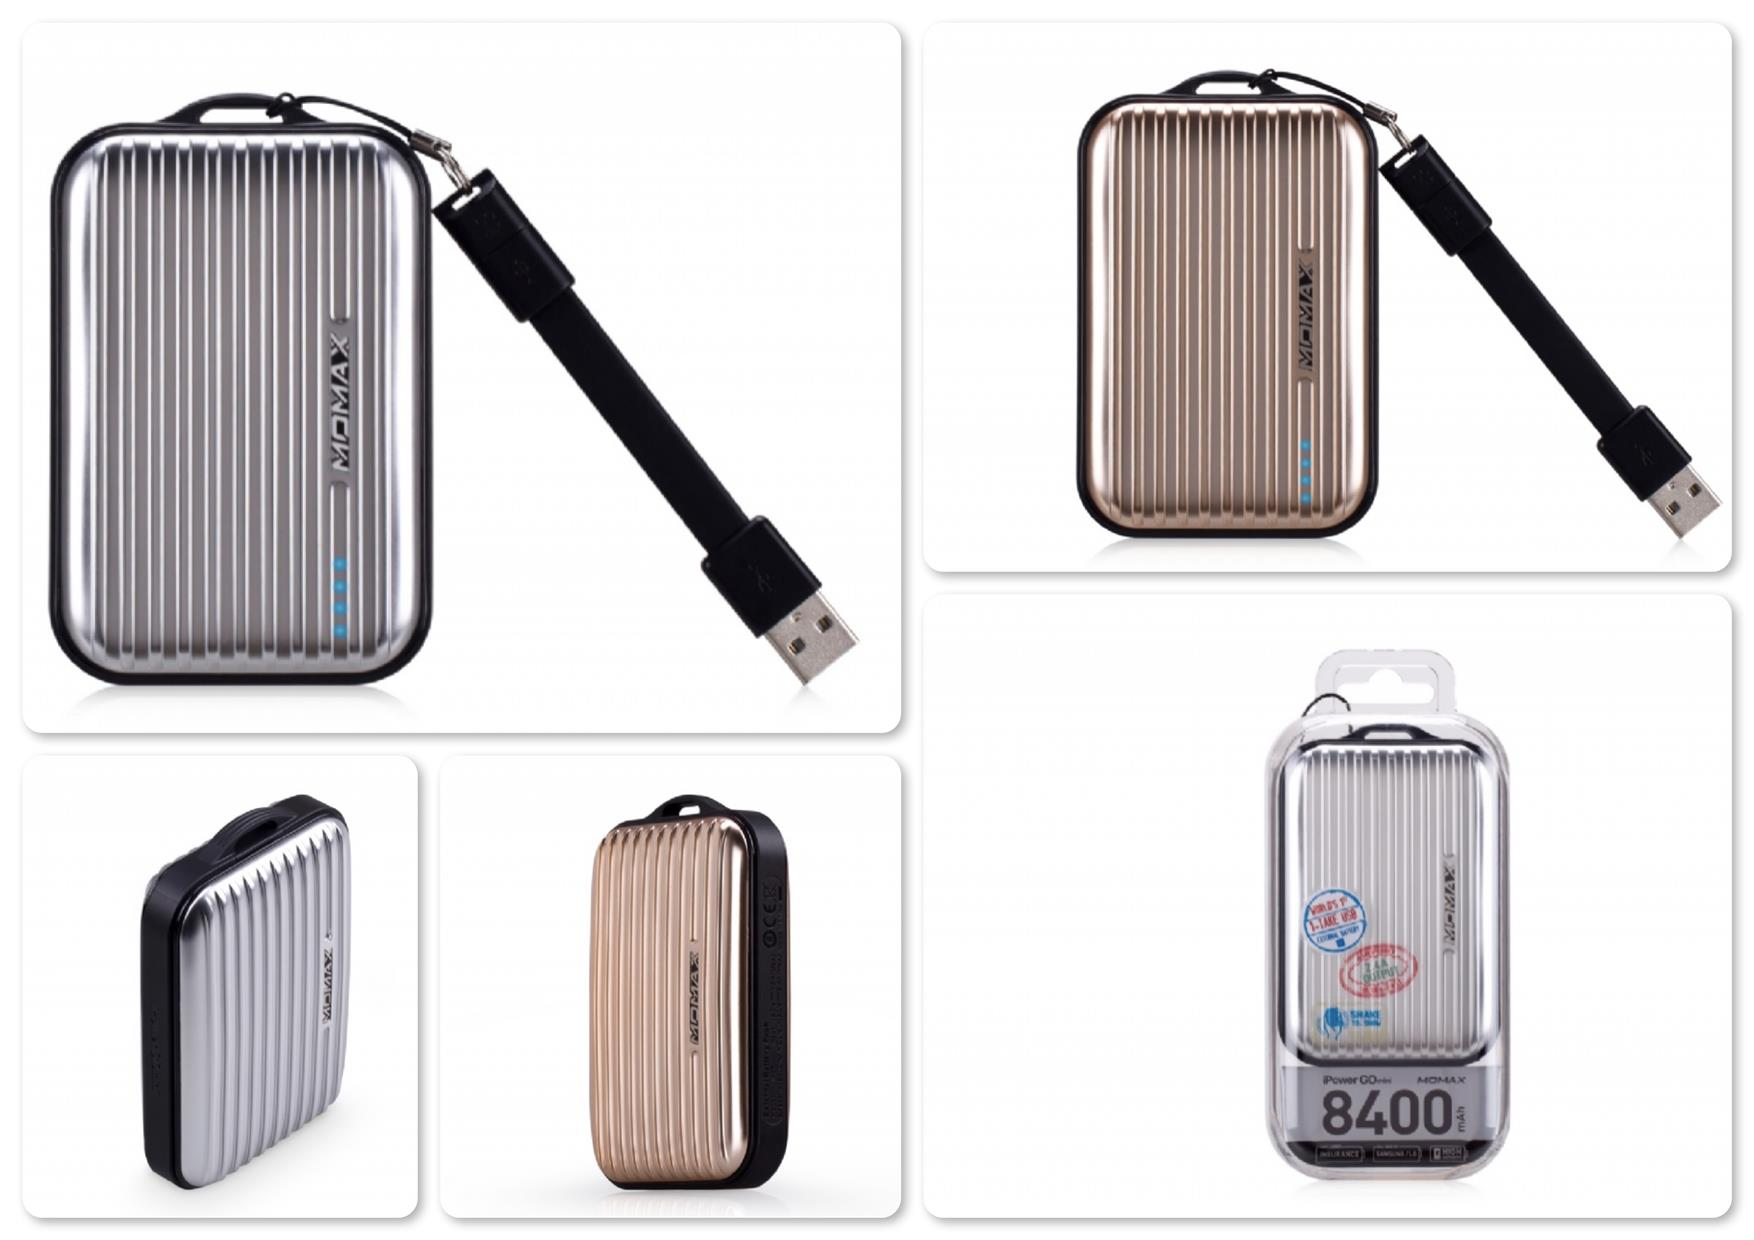 Bdotcom = Momax iPower Go Mini DownTown 8400 mAh Power Bank